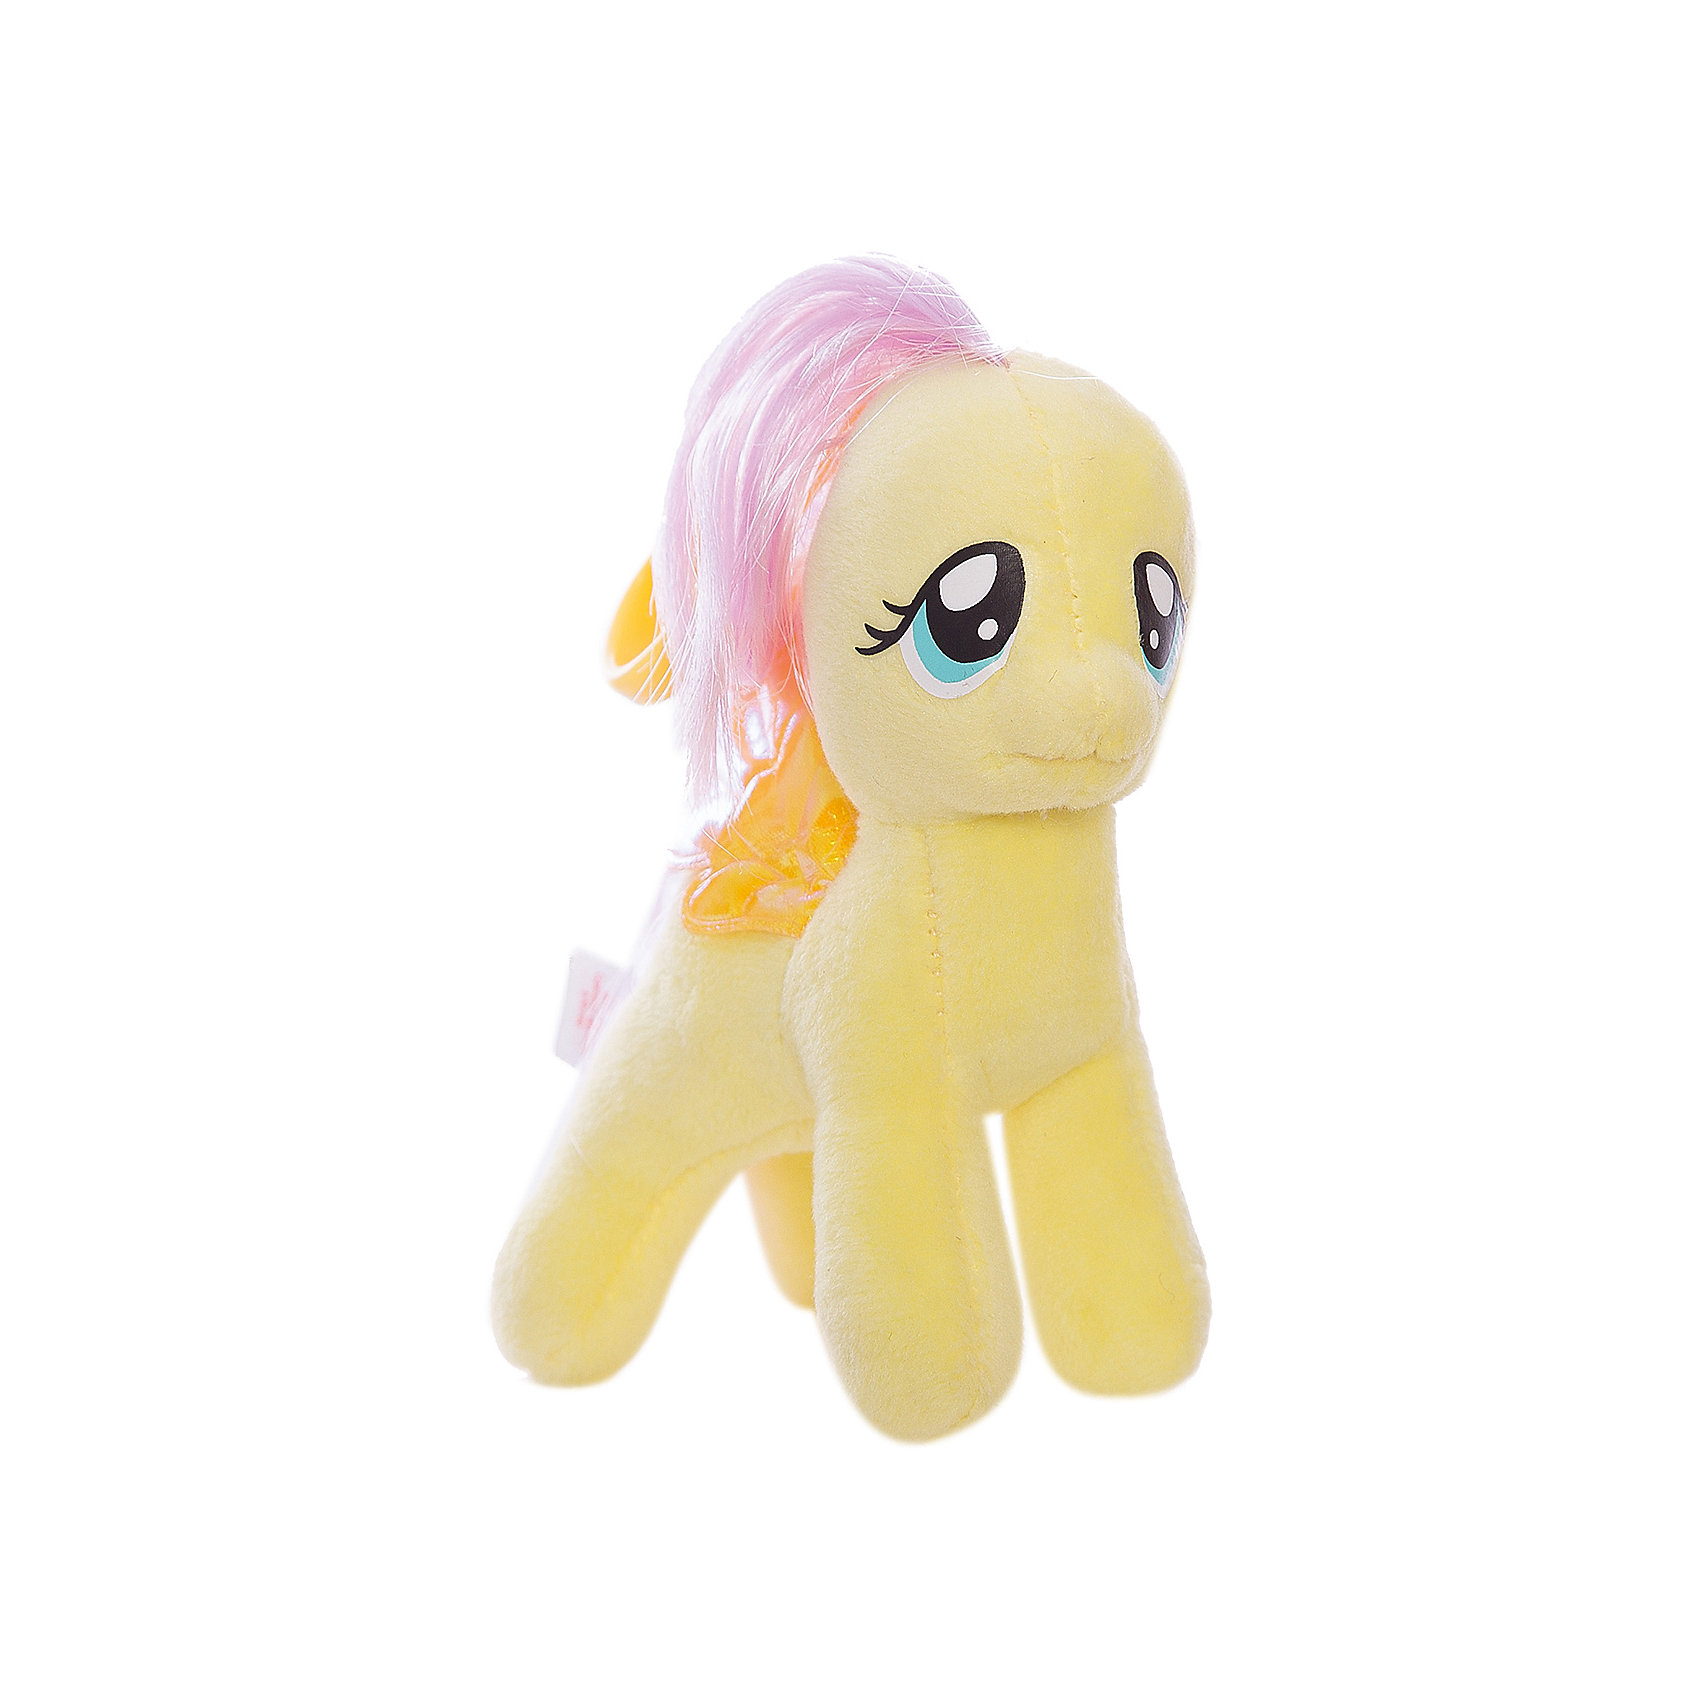 Ty Пони Fluttershy на брелке, 15 см, My little Pony, Ty ty frizzy домовёнок tang 15 см 37138